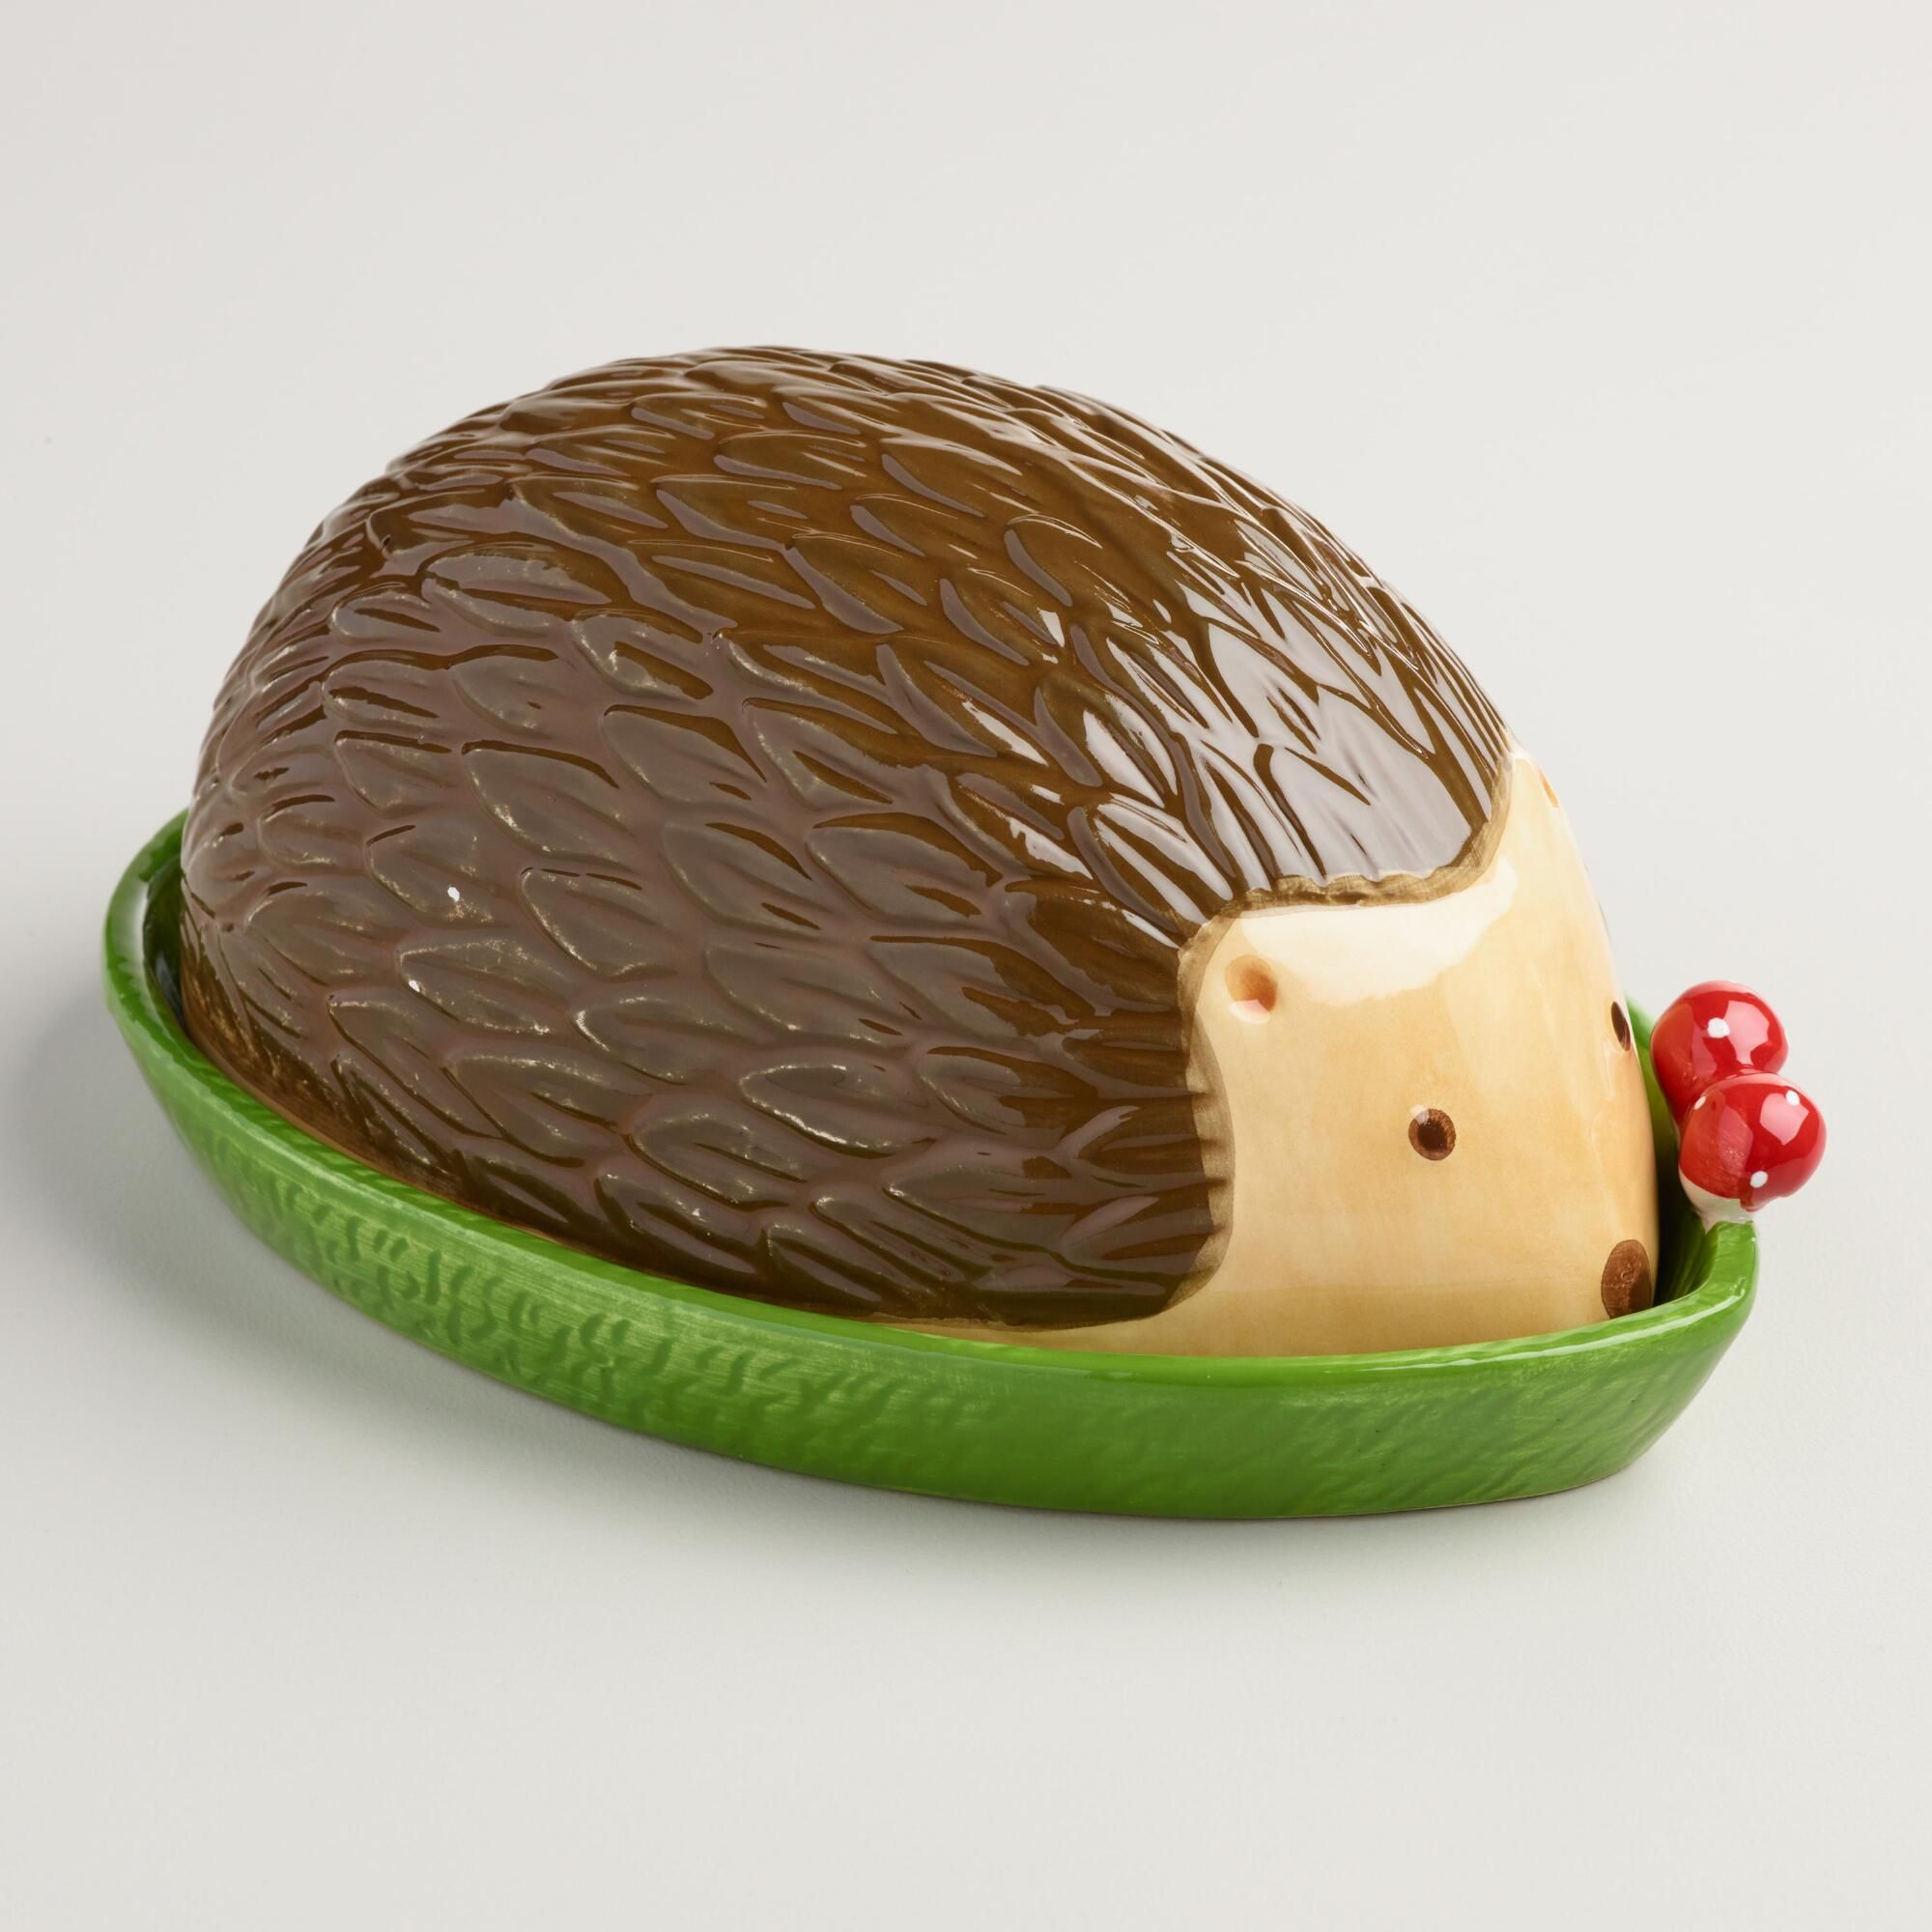 Our Adorable Woodland Critter Butter Dish Is Shaped, Painted And Detailed  Like A Real Hedgehog